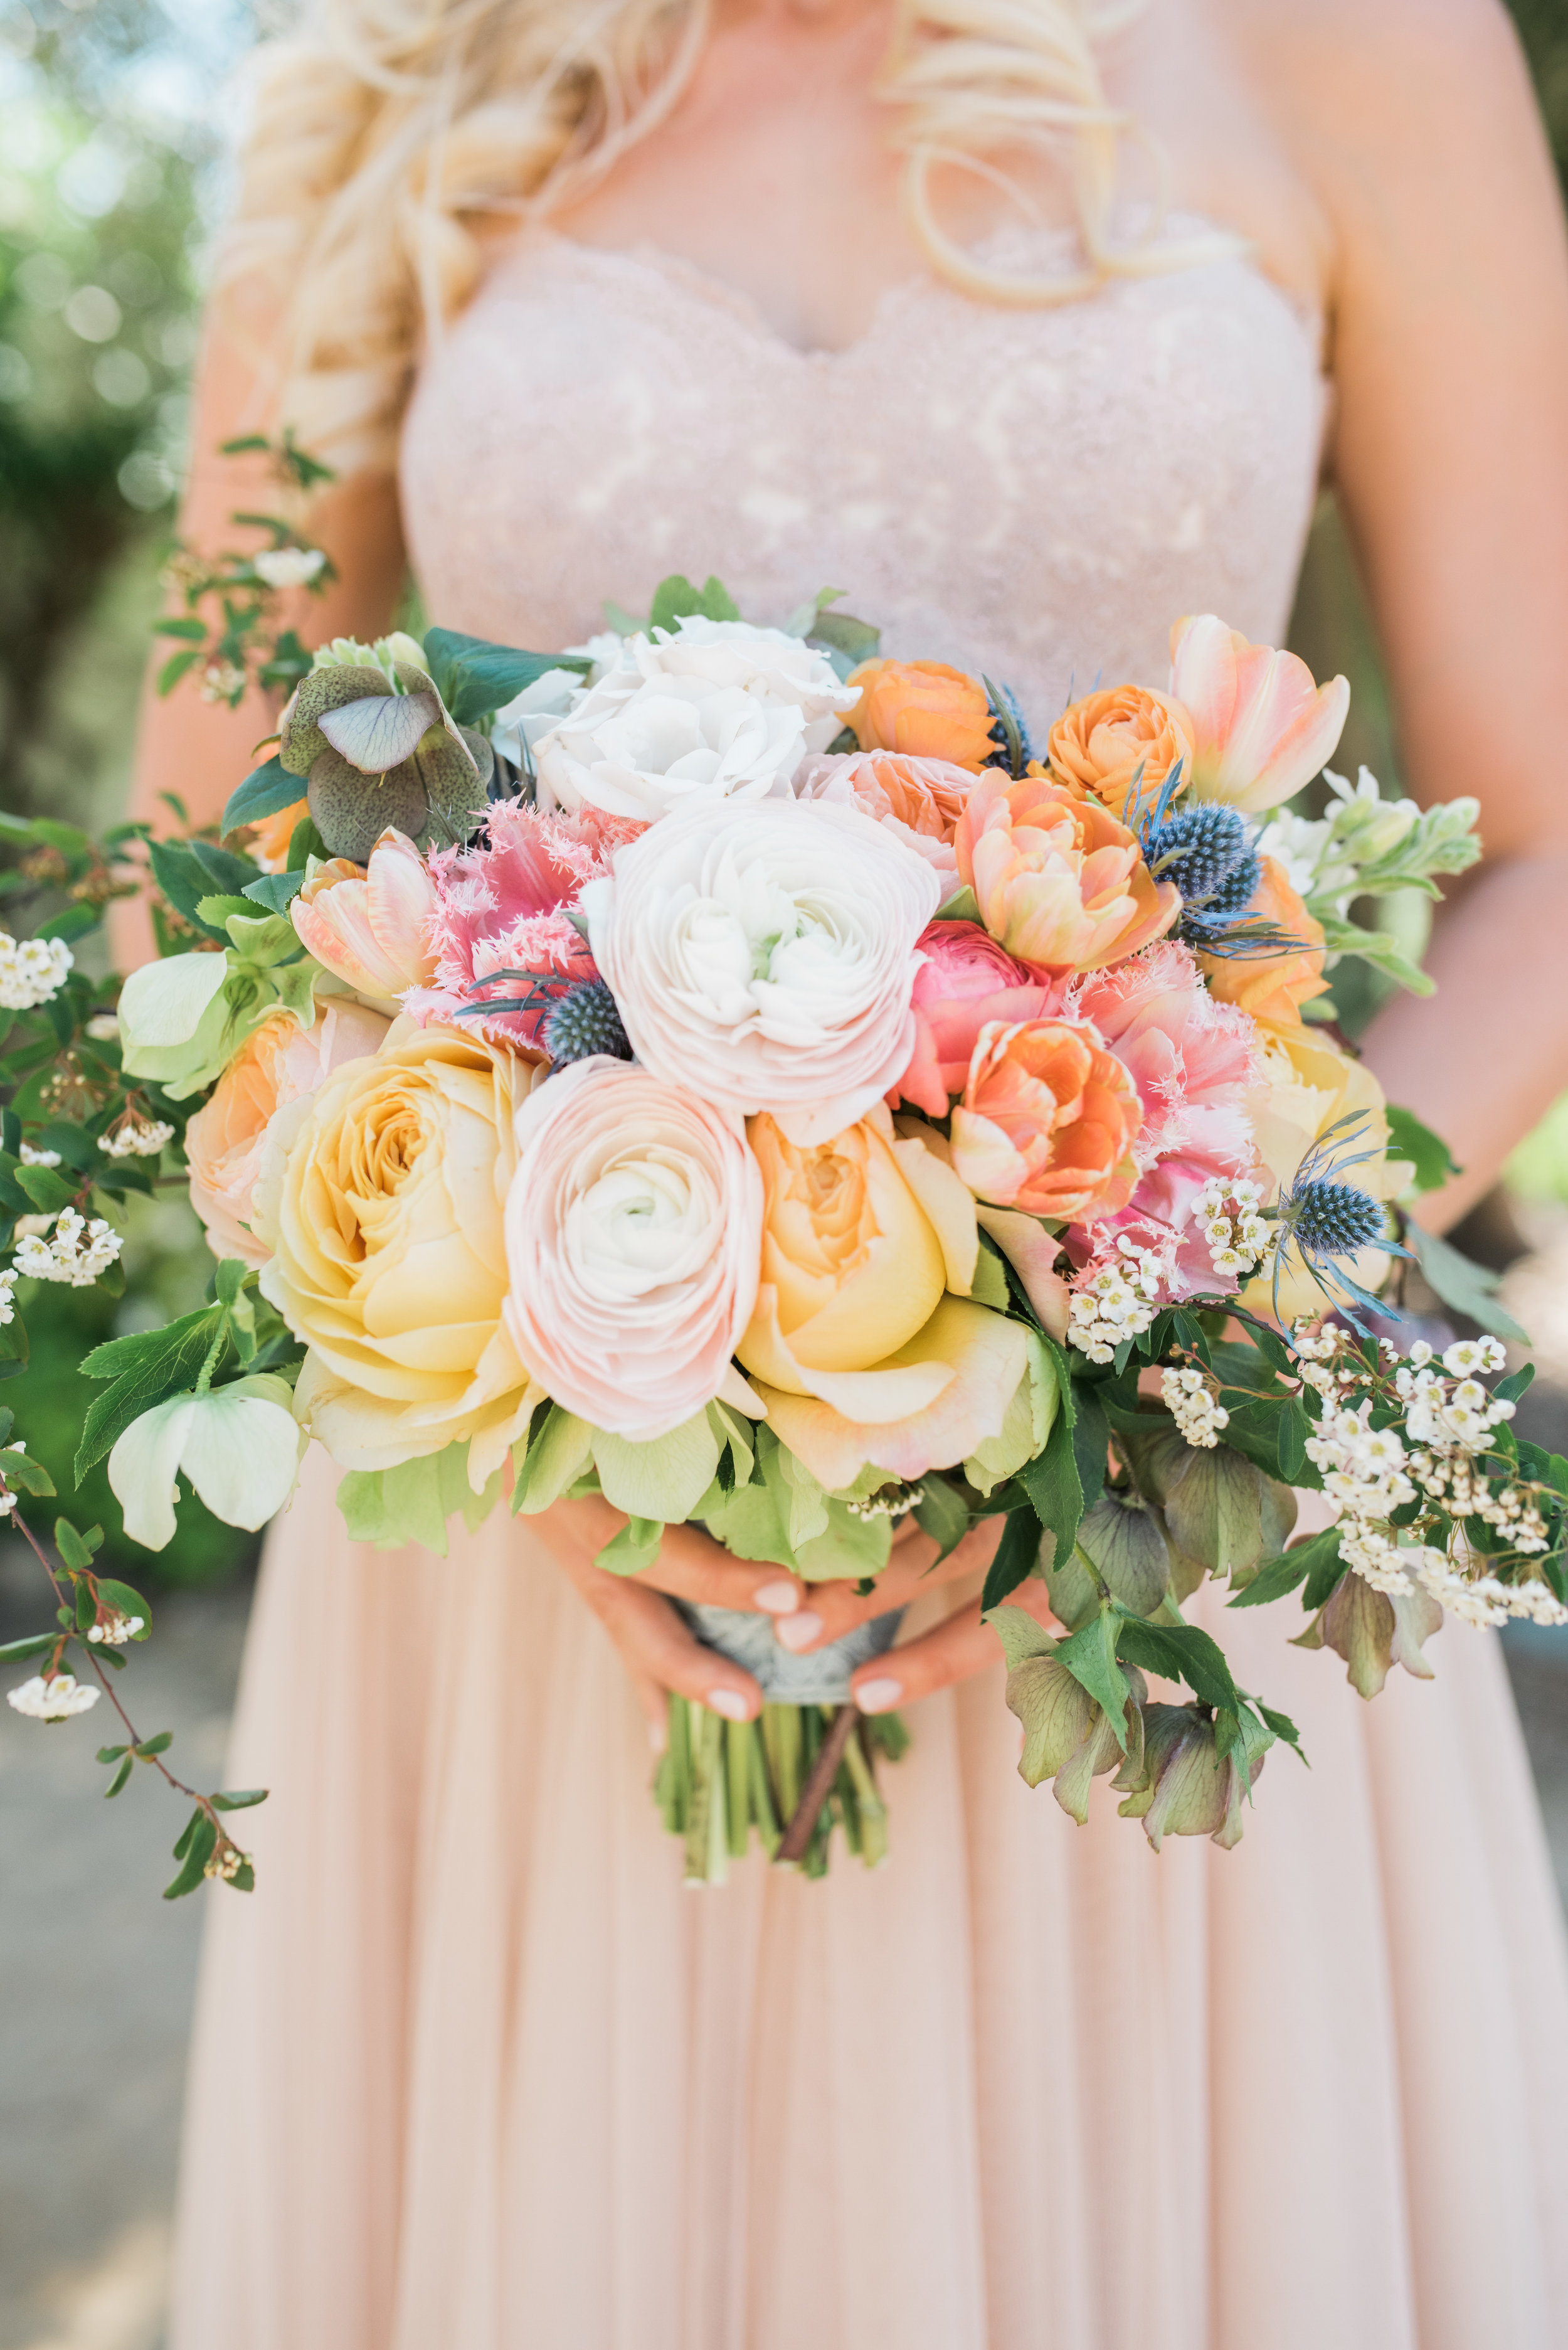 Photography -  Jillian Rose Photography   Blush Clooney Ranunculus - Spring  Orange Double Tulip - Spring/Summer/Winter  White Spirea - Spring  Coral Queensland Fringed Tulip - Spring/Summer/Winter  Green/Purple Hellebores - Spring/Winter  Blue Eryngium - Year Round  Yellow Caramel Antique Garden Rose - Year Round  Orange Ranunculus - Best in Spring (Available but smaller heads the rest of the year)  White Tweedia - Spring/Summer/Fall